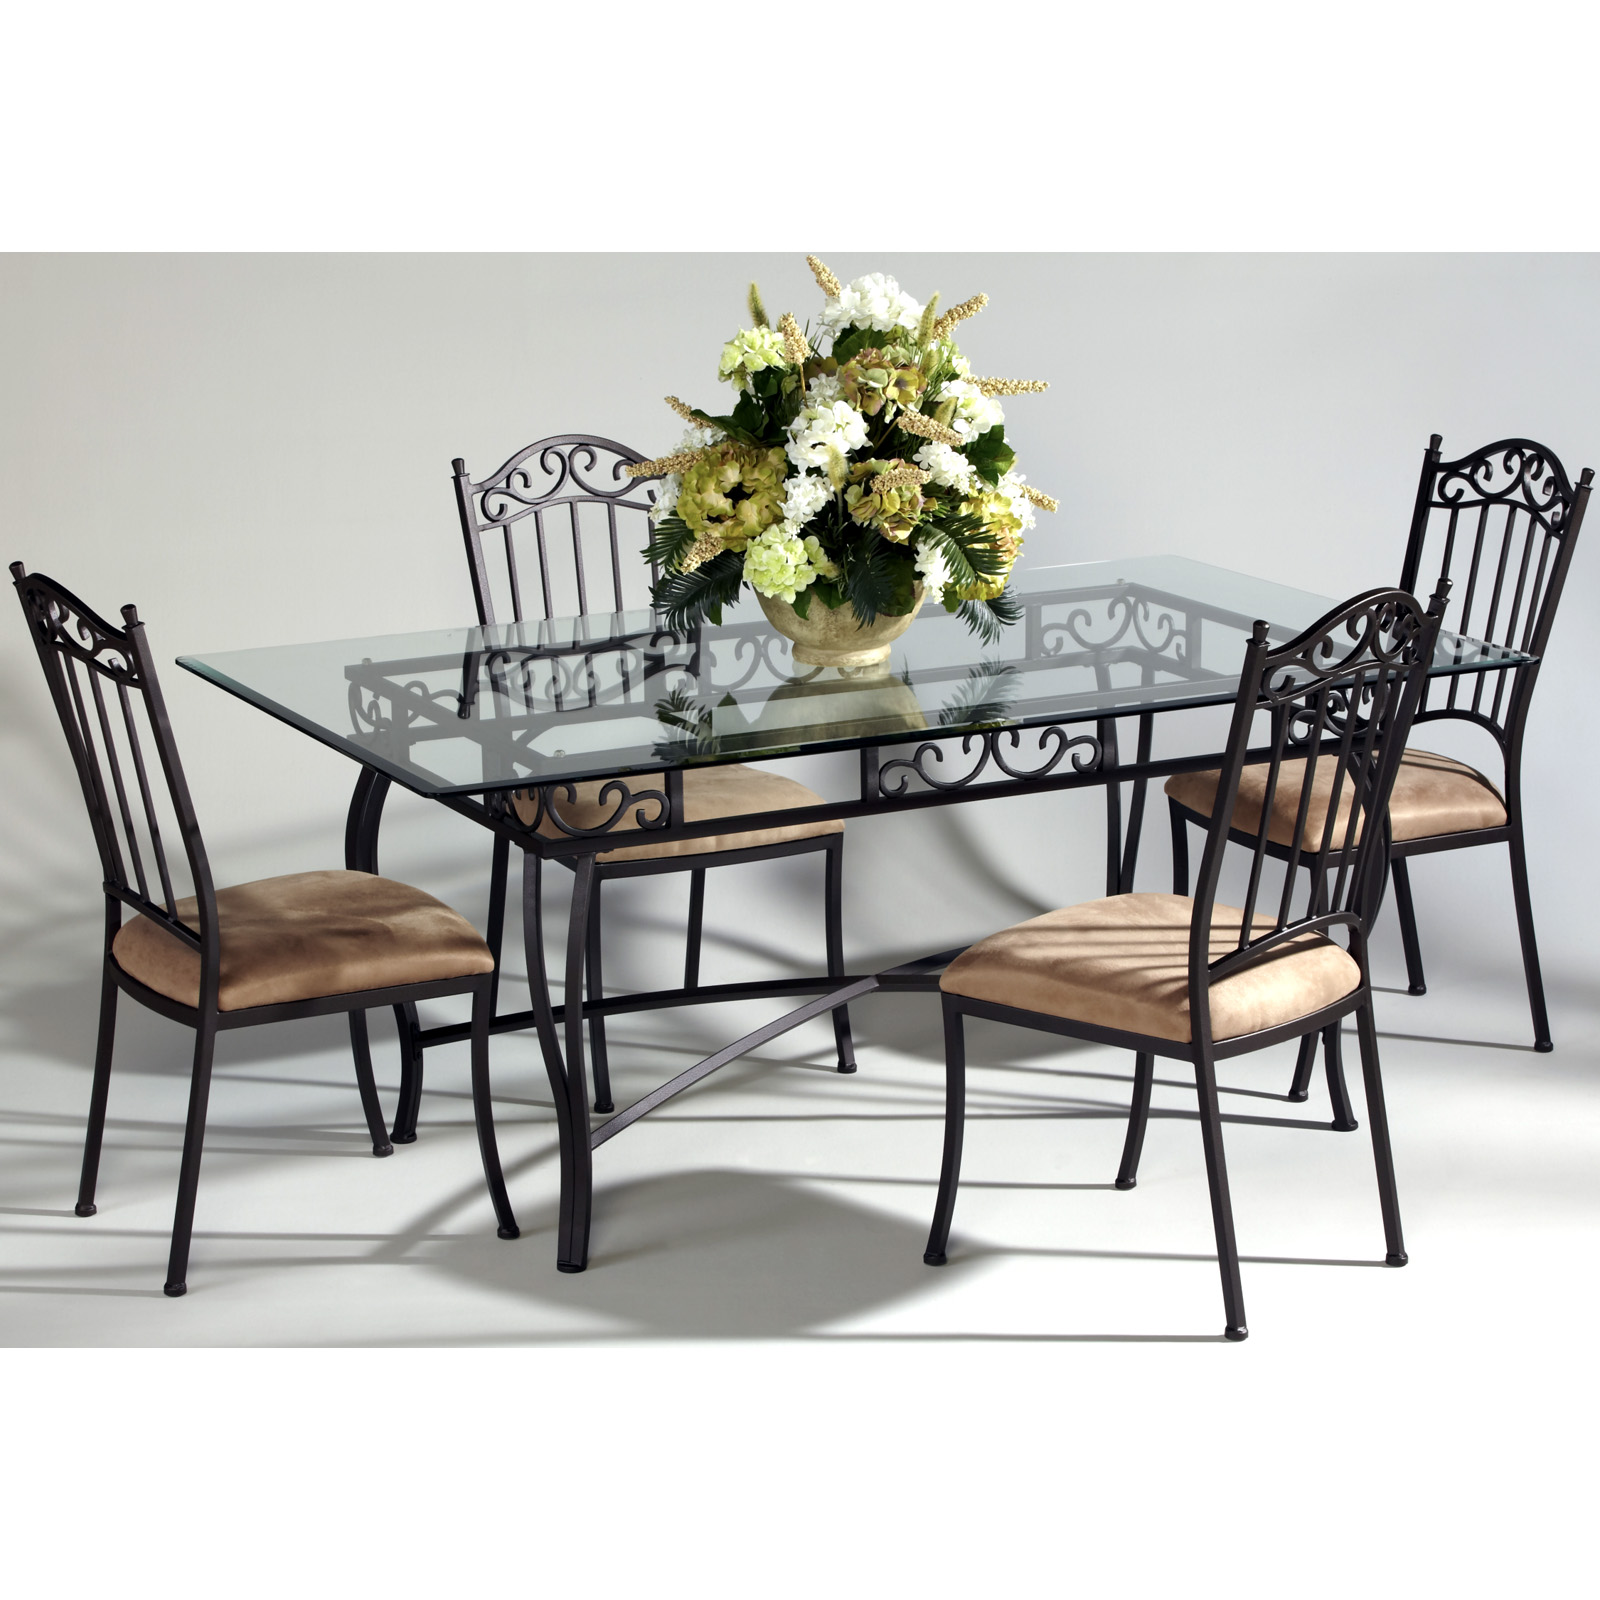 Chintaly Bethel Rectangular Wrought Iron Dining Table With